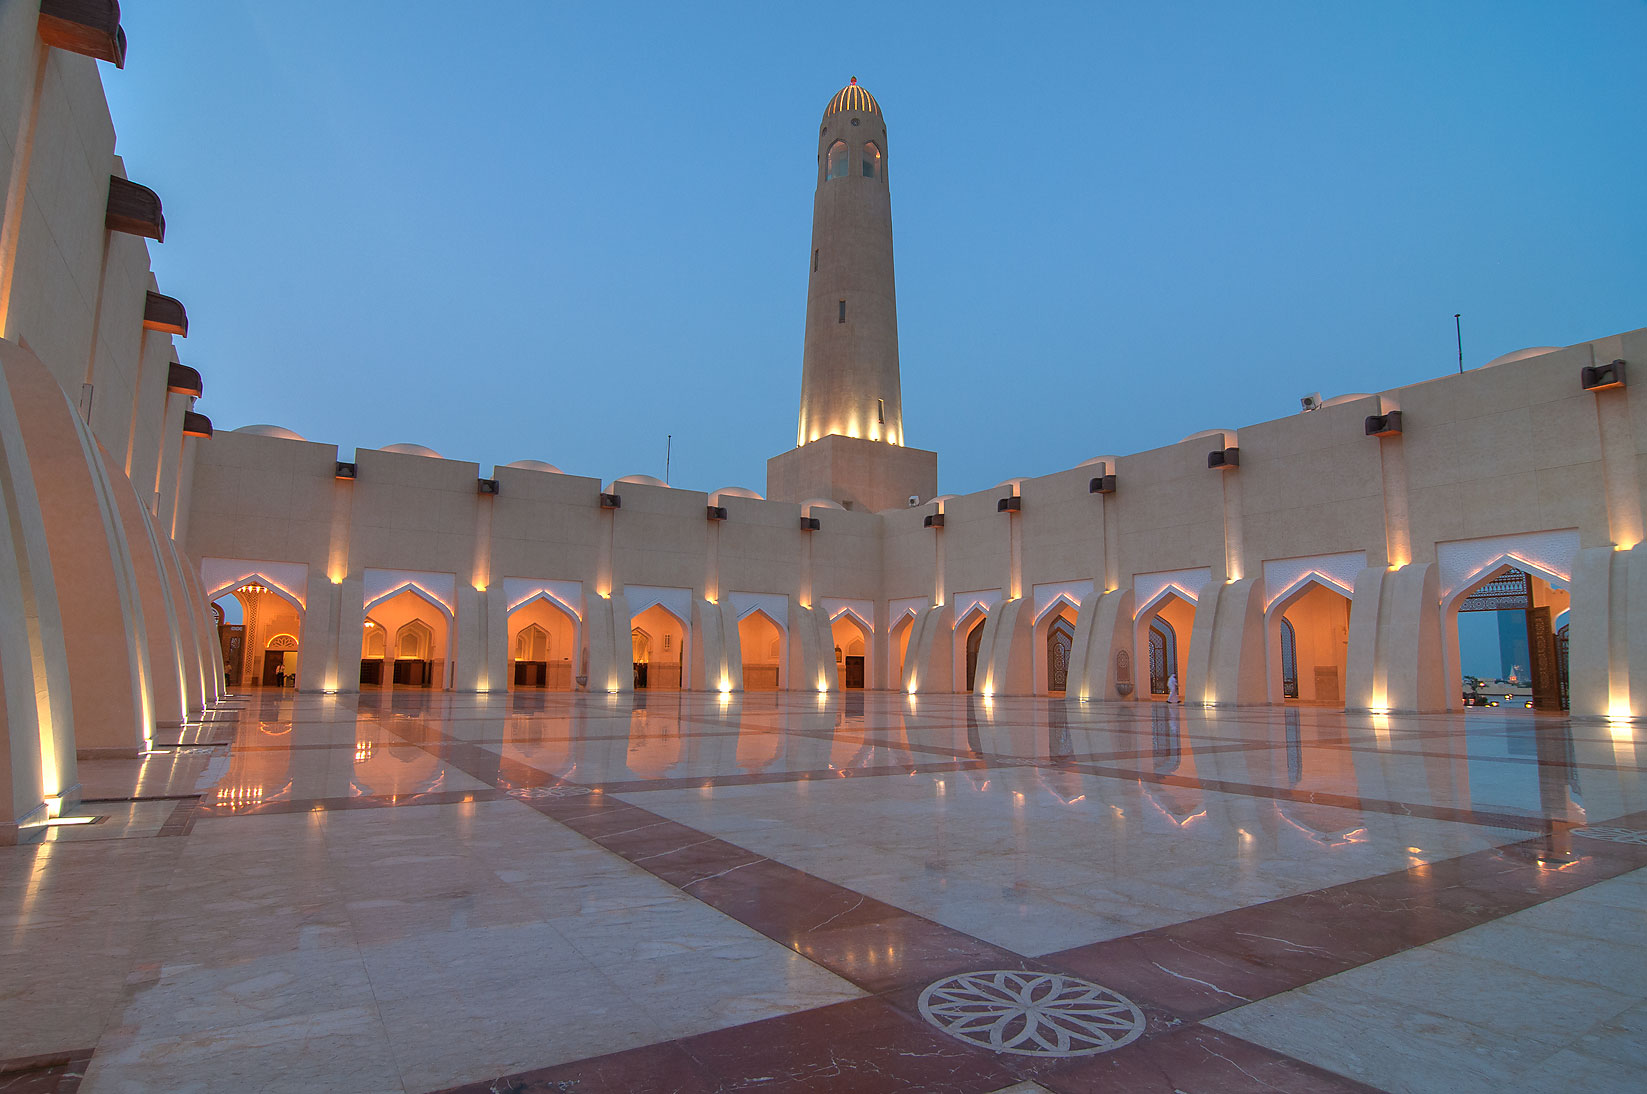 Evening light in large courtyard (sahn...Ibn Abdul Wahhab Mosque). Doha, Qatar